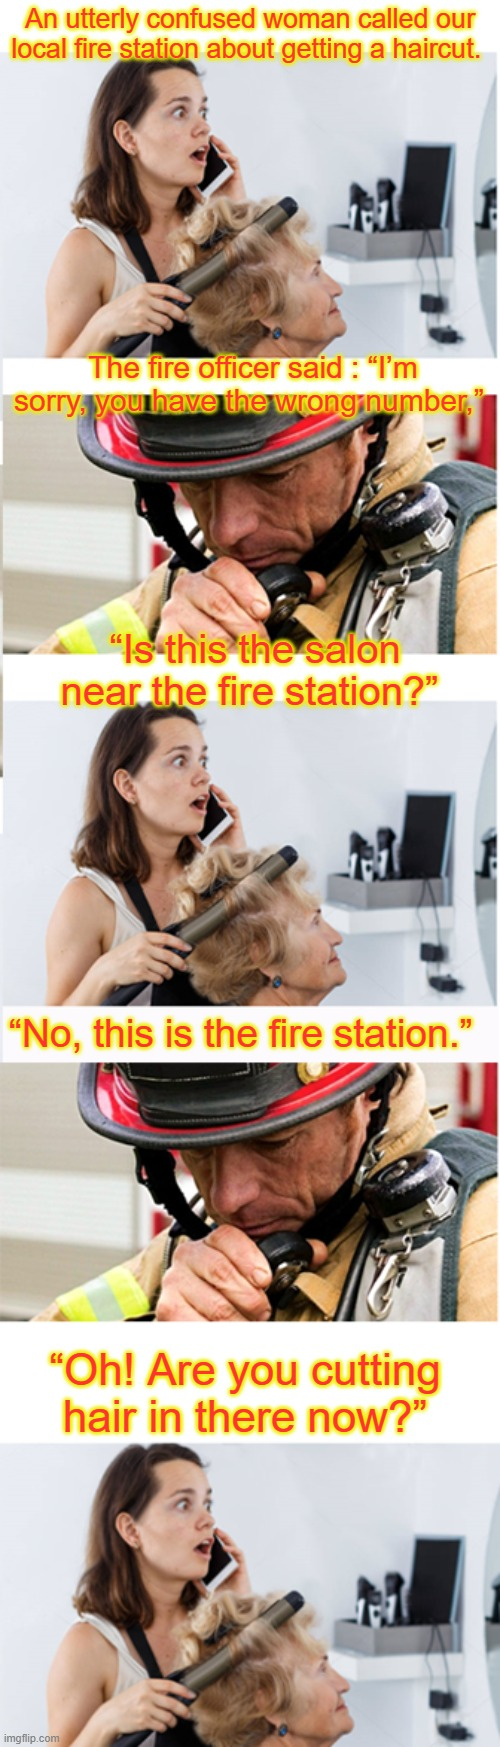 "Salon & Fire station |  An utterly confused woman called our local fire station about getting a haircut. The fire officer said : ""I'm sorry, you have the wrong number,""; ""Is this the salon near the fire station?""; ""No, this is the fire station.""; ""Oh! Are you cutting hair in there now?"" 